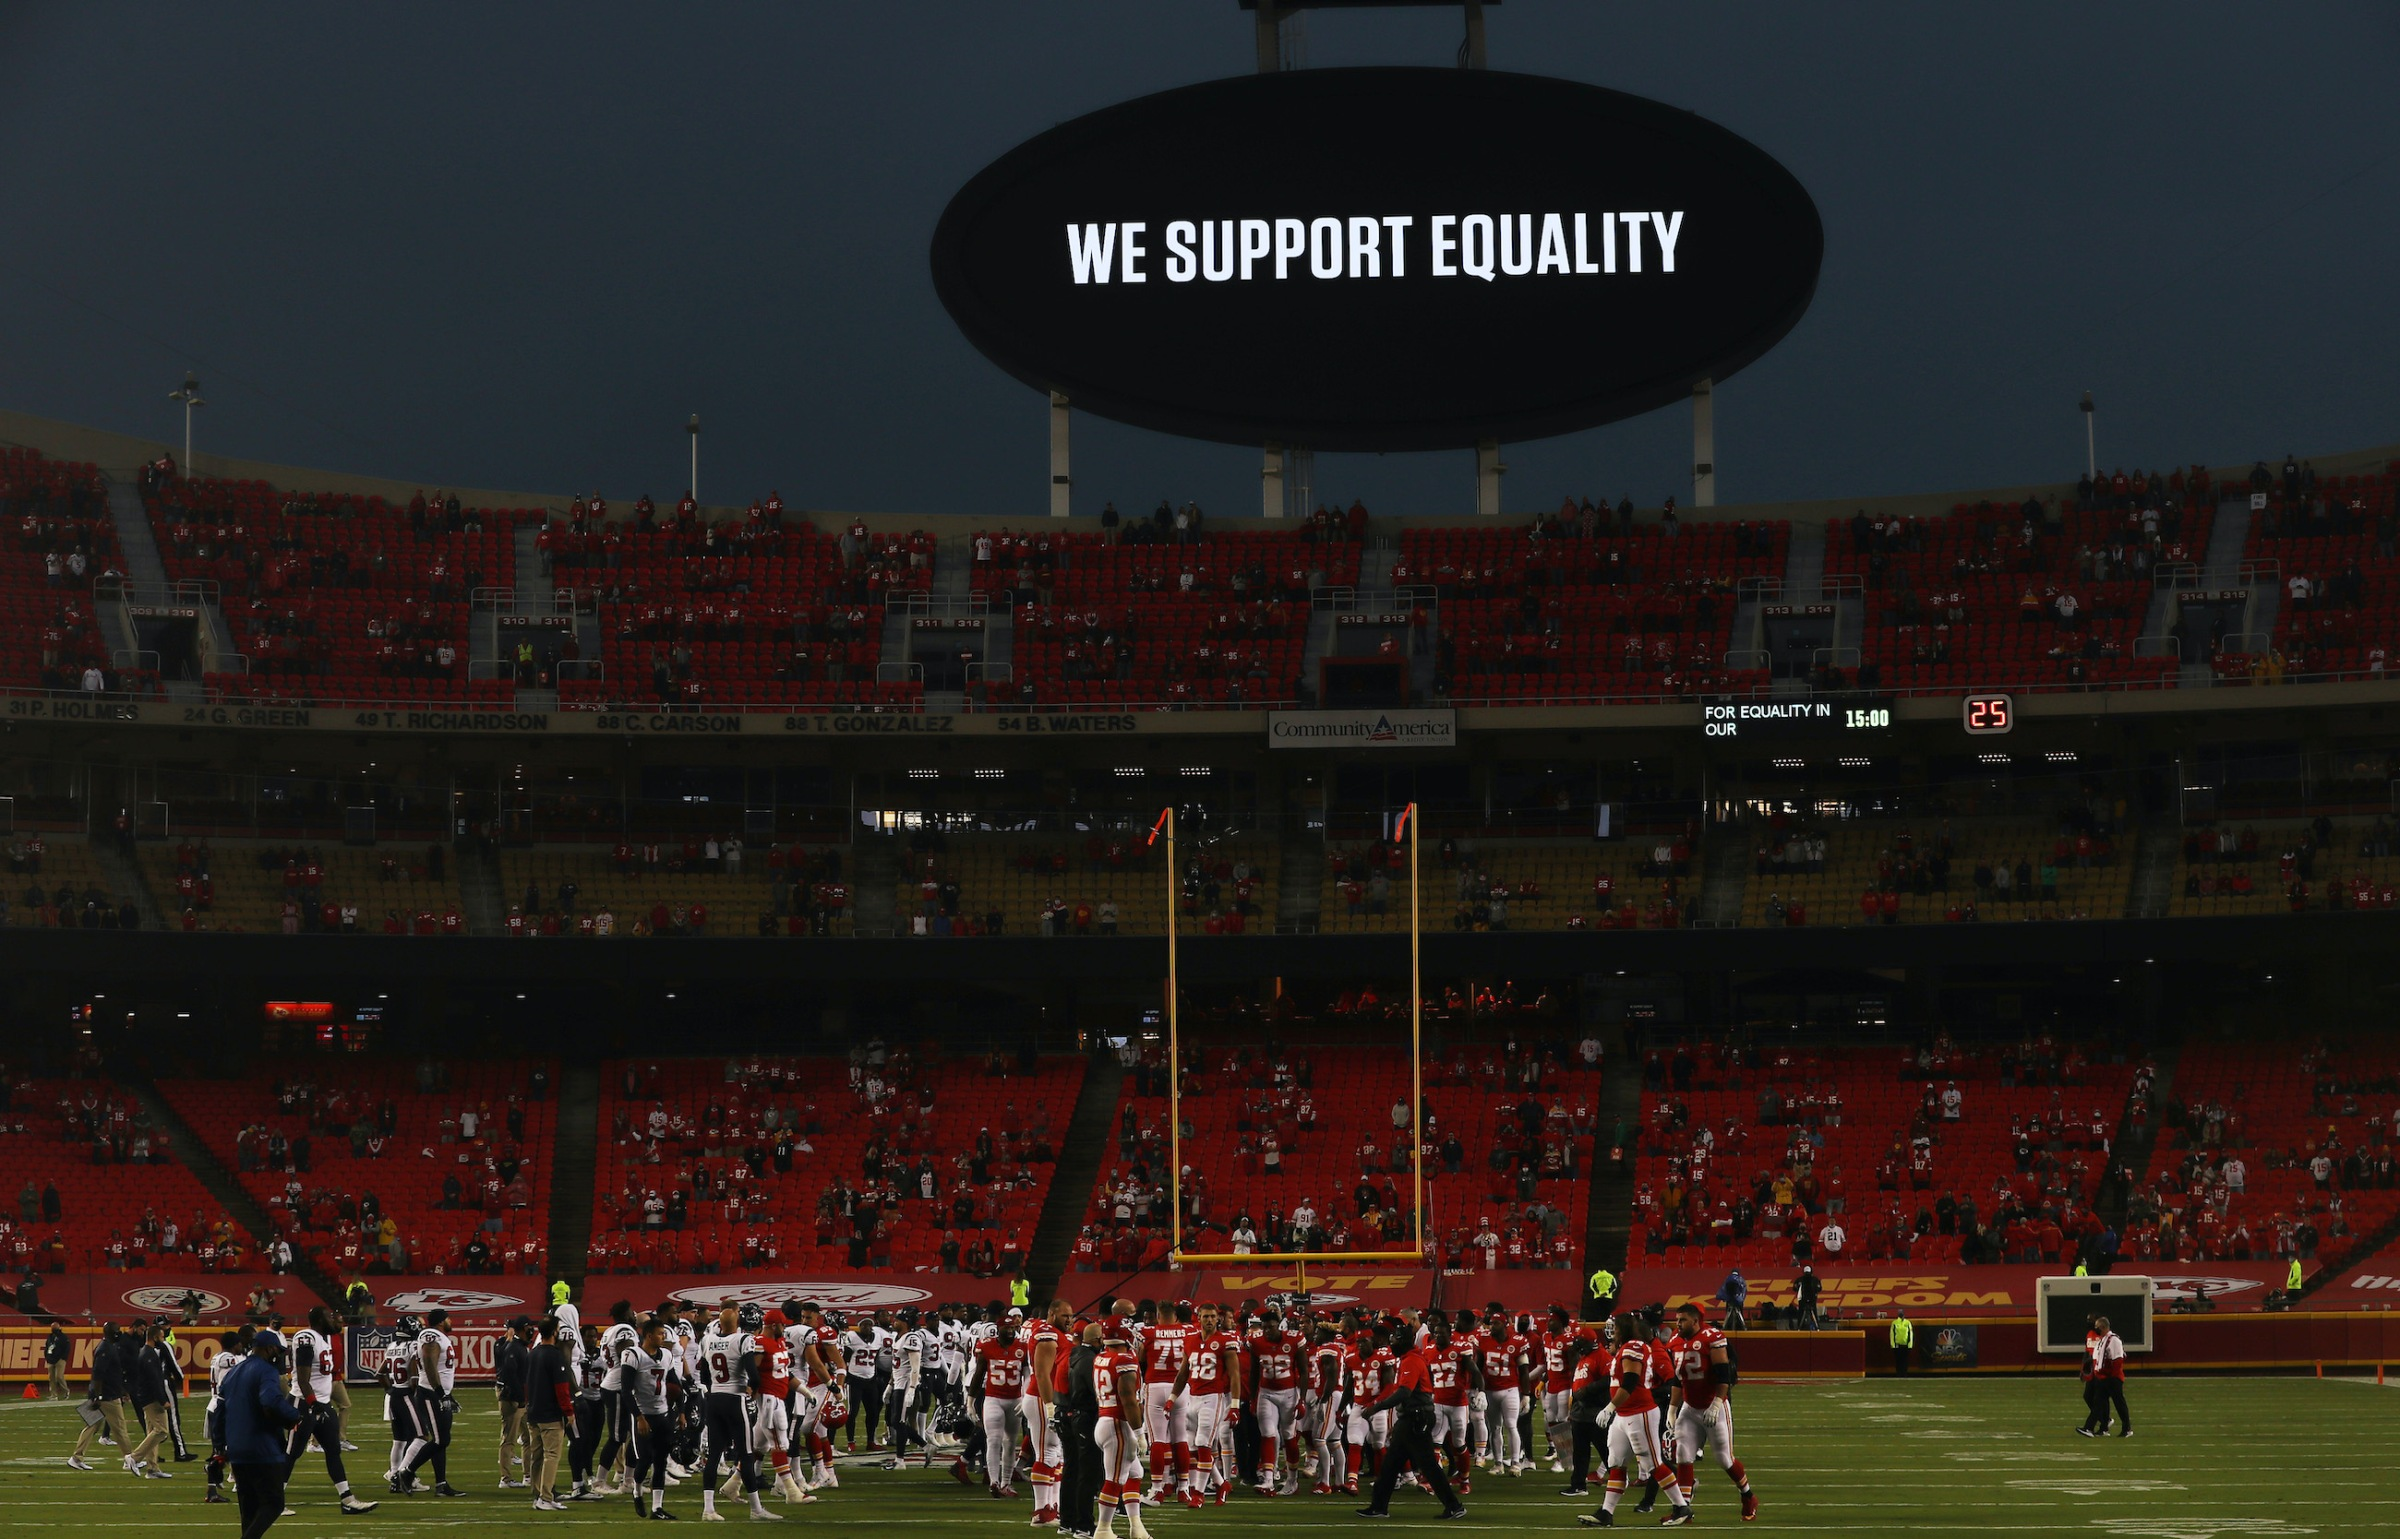 KANSAS CITY, MISSOURI - SEPTEMBER 10: Players from the Kansas City Chiefs and Houston Texans unite in a moment of silence before the start of a game at Arrowhead Stadium on September 10, 2020 in Kansas City, Missouri. (Photo by Jamie Squire/Getty Images)